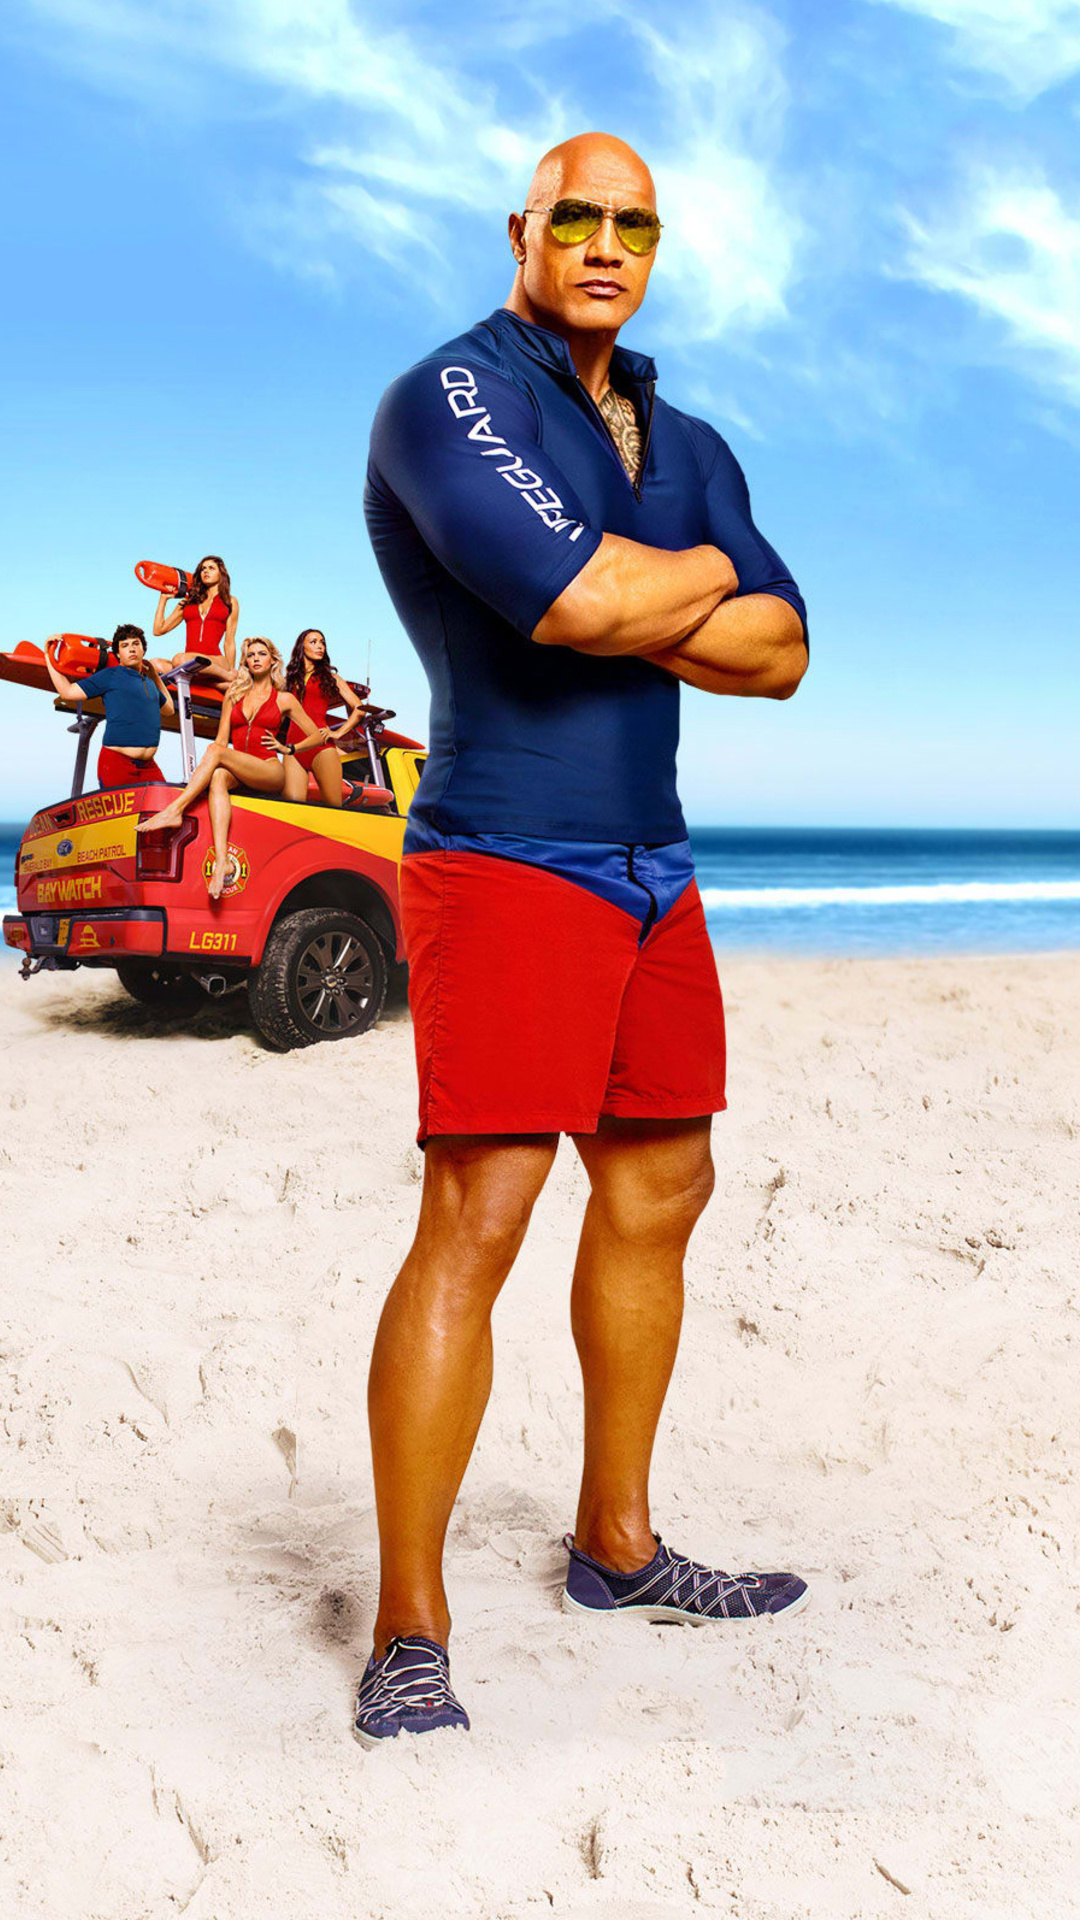 dwayne-johnson-and-zac-efron-in-baywatch-movie-aj.jpg